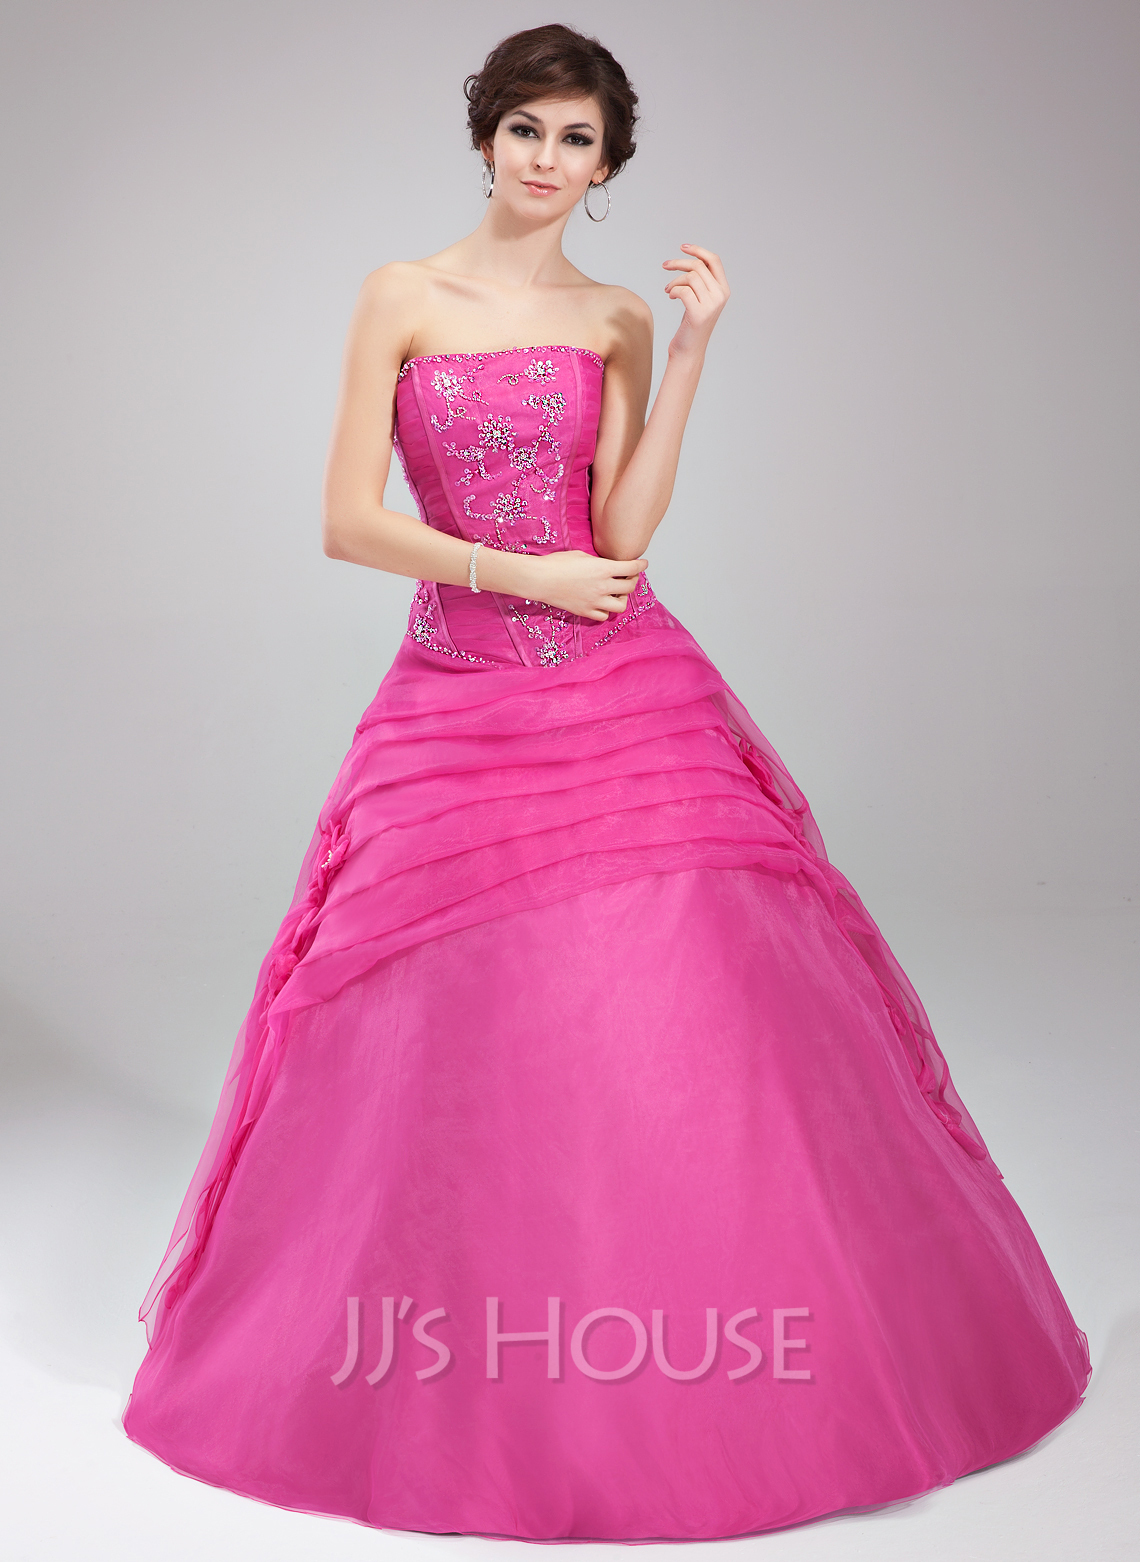 2e2edfeb3c Ball-Gown Strapless Floor-Length Organza Quinceanera Dress With Ruffle  Beading Flower(s. Loading zoom